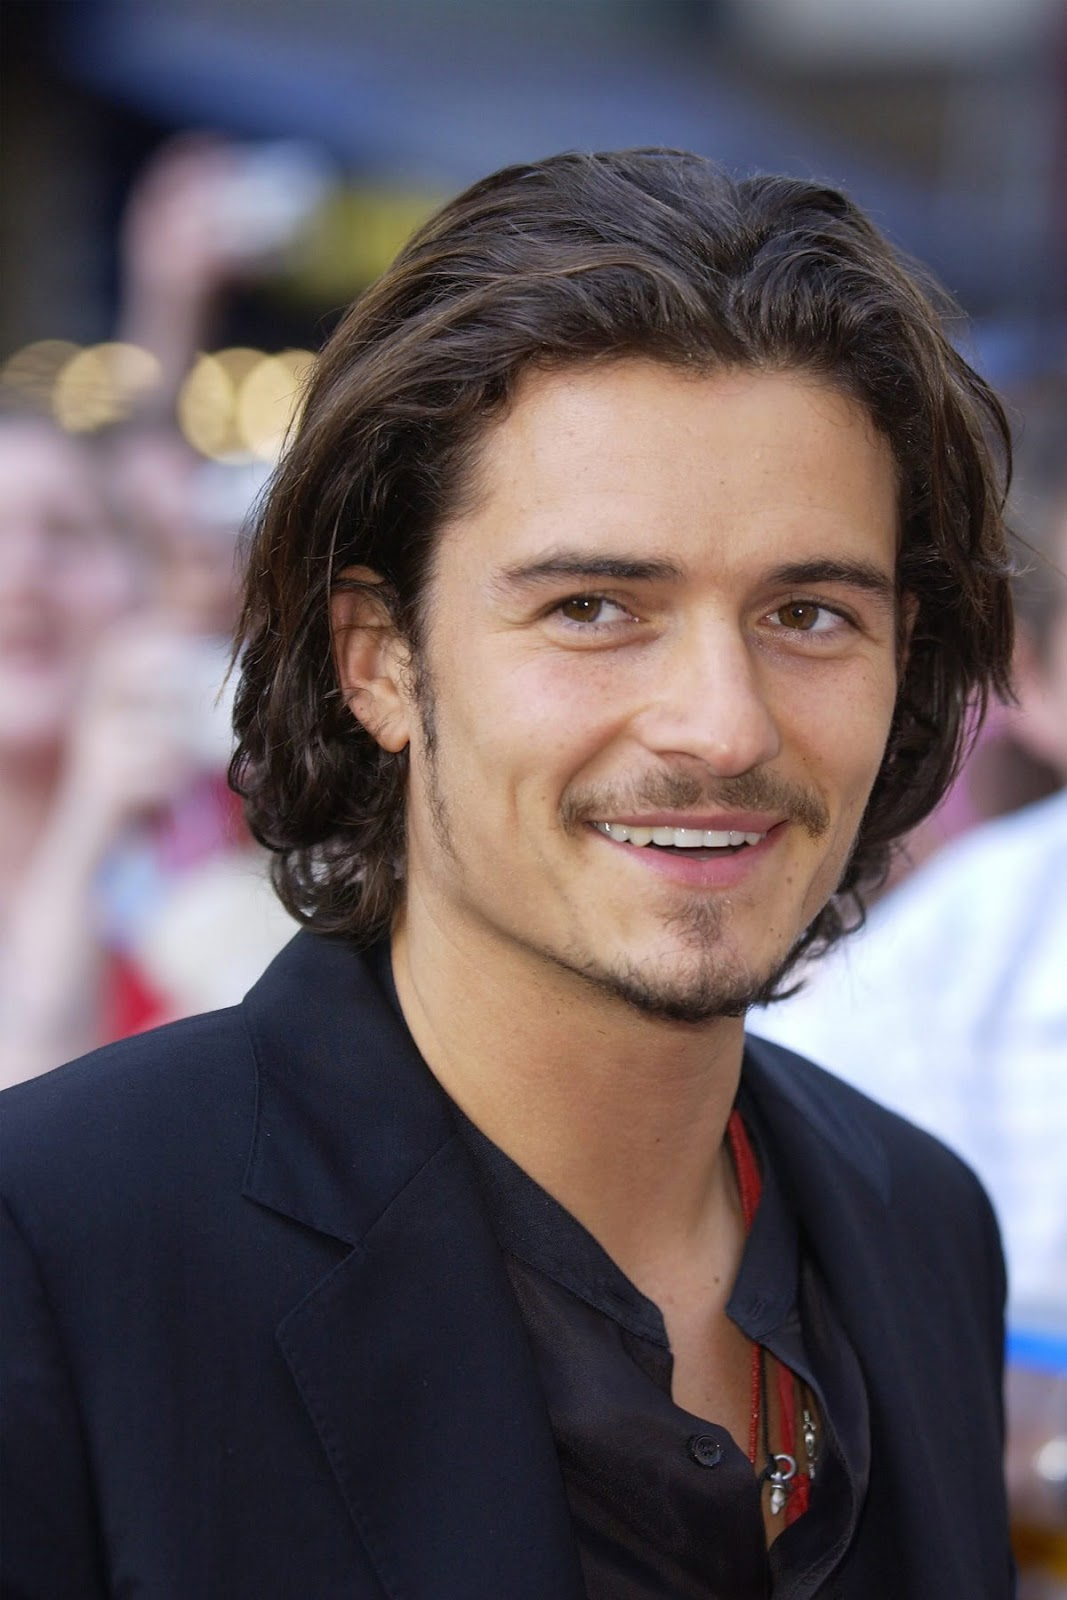 Orlando Bloom Wallpaper 2013 Orlando Bloom | HD Wal...